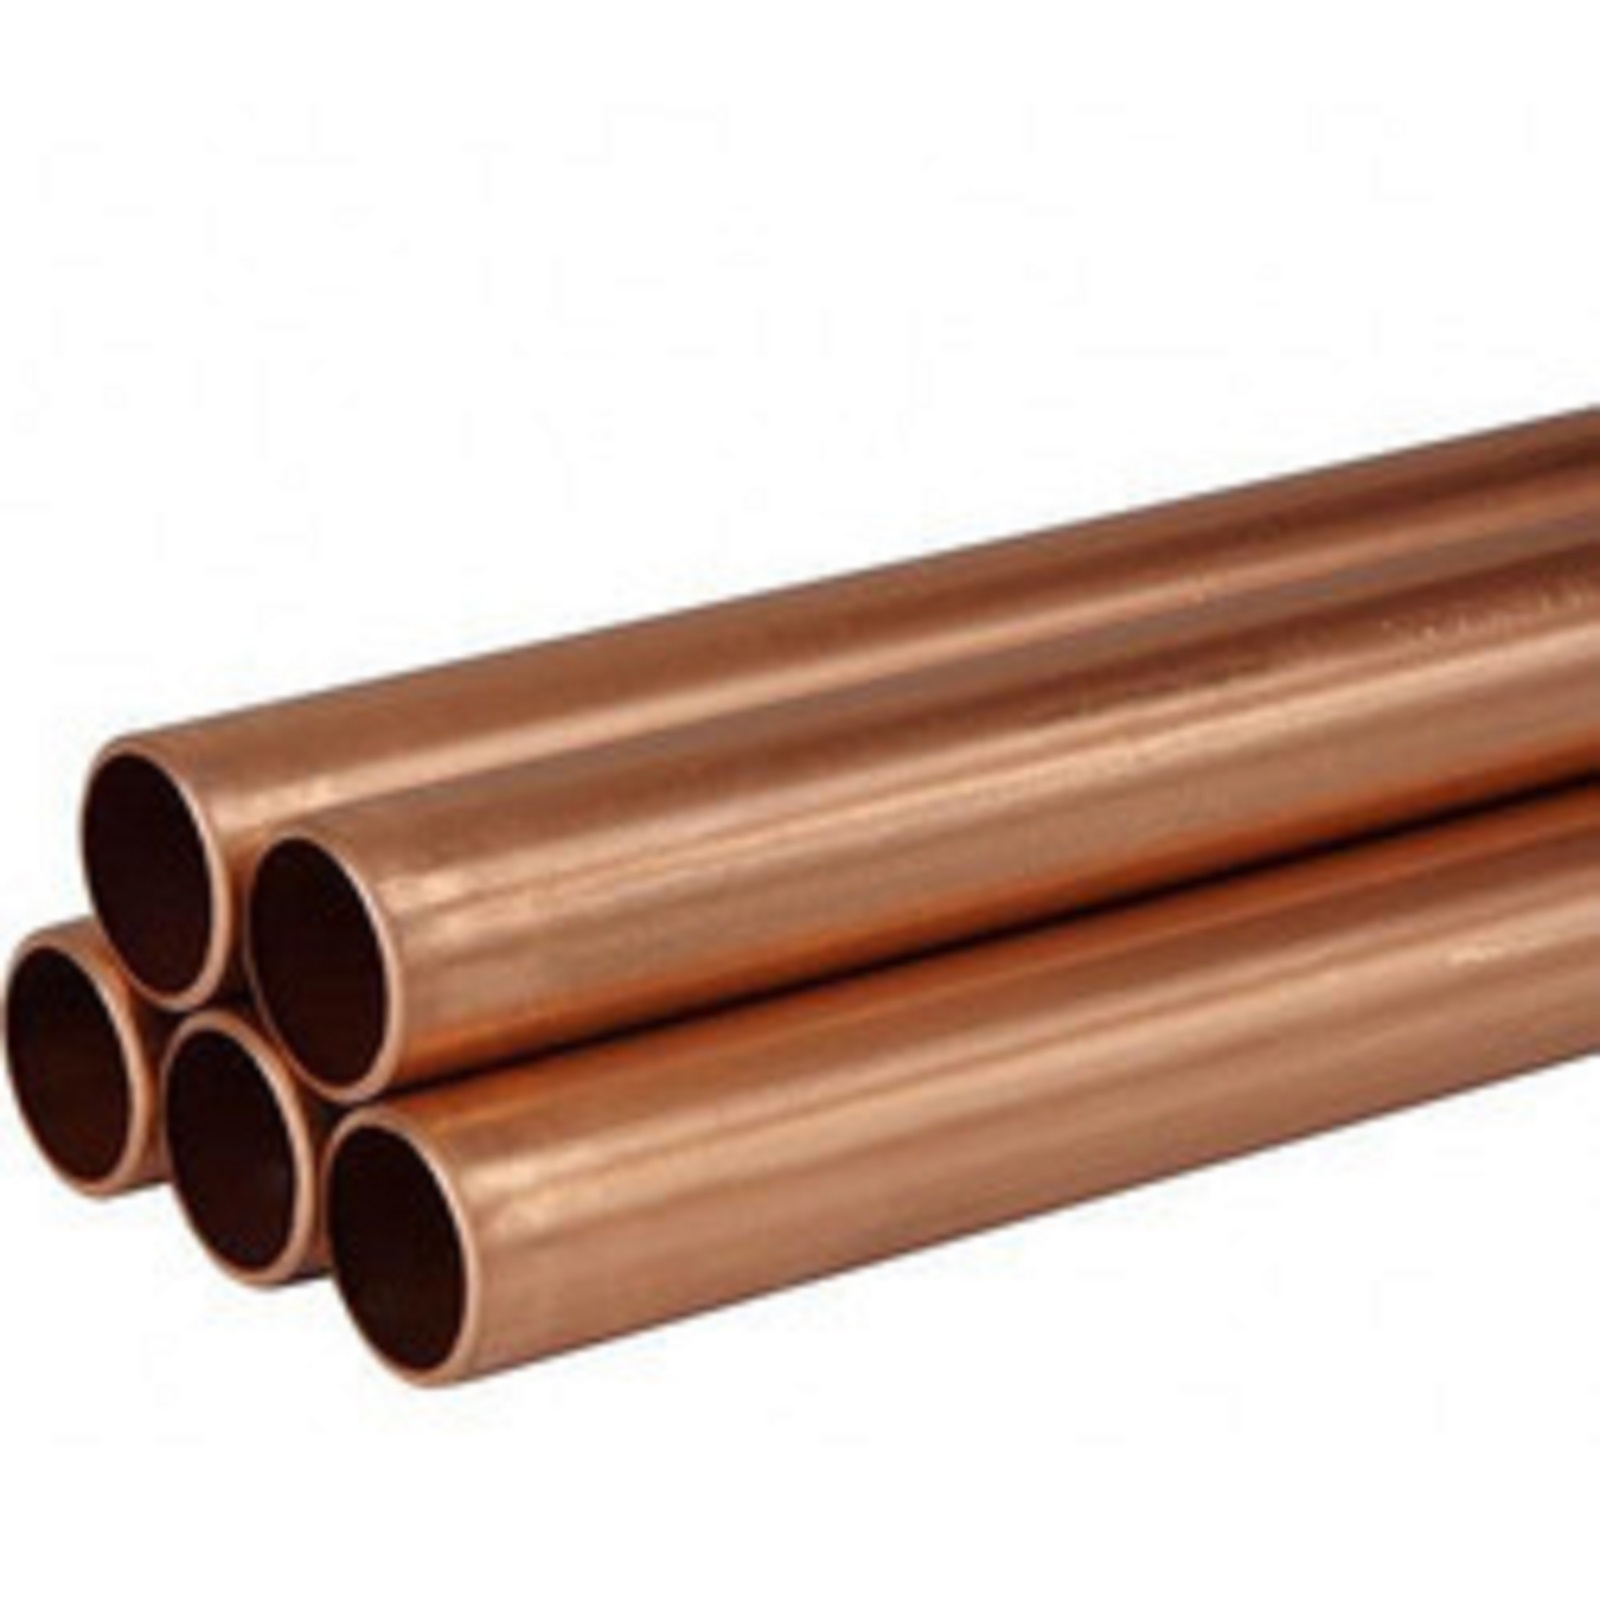 Copper vs pex sharkbite for diy plumbing pex pipes vs for Pex versus copper